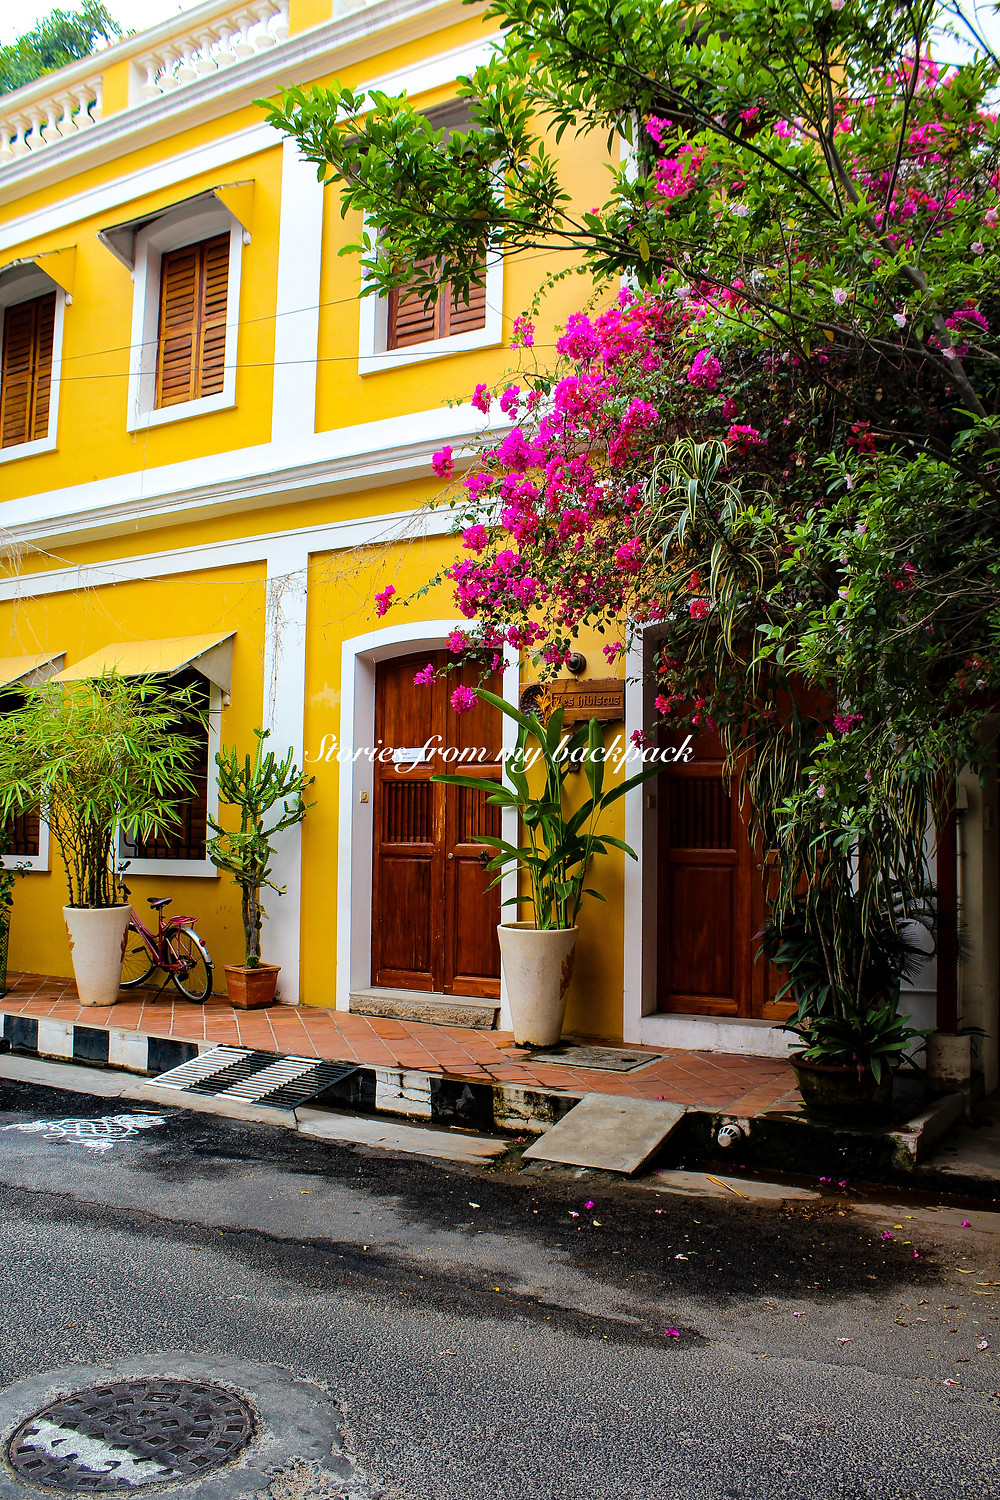 Auroville things to do, where to eat in Pondicherry, things to do in Pondicherry, bana ride in Pondicherry, scuba diving in Pondicherry, surfing in Pondicherry